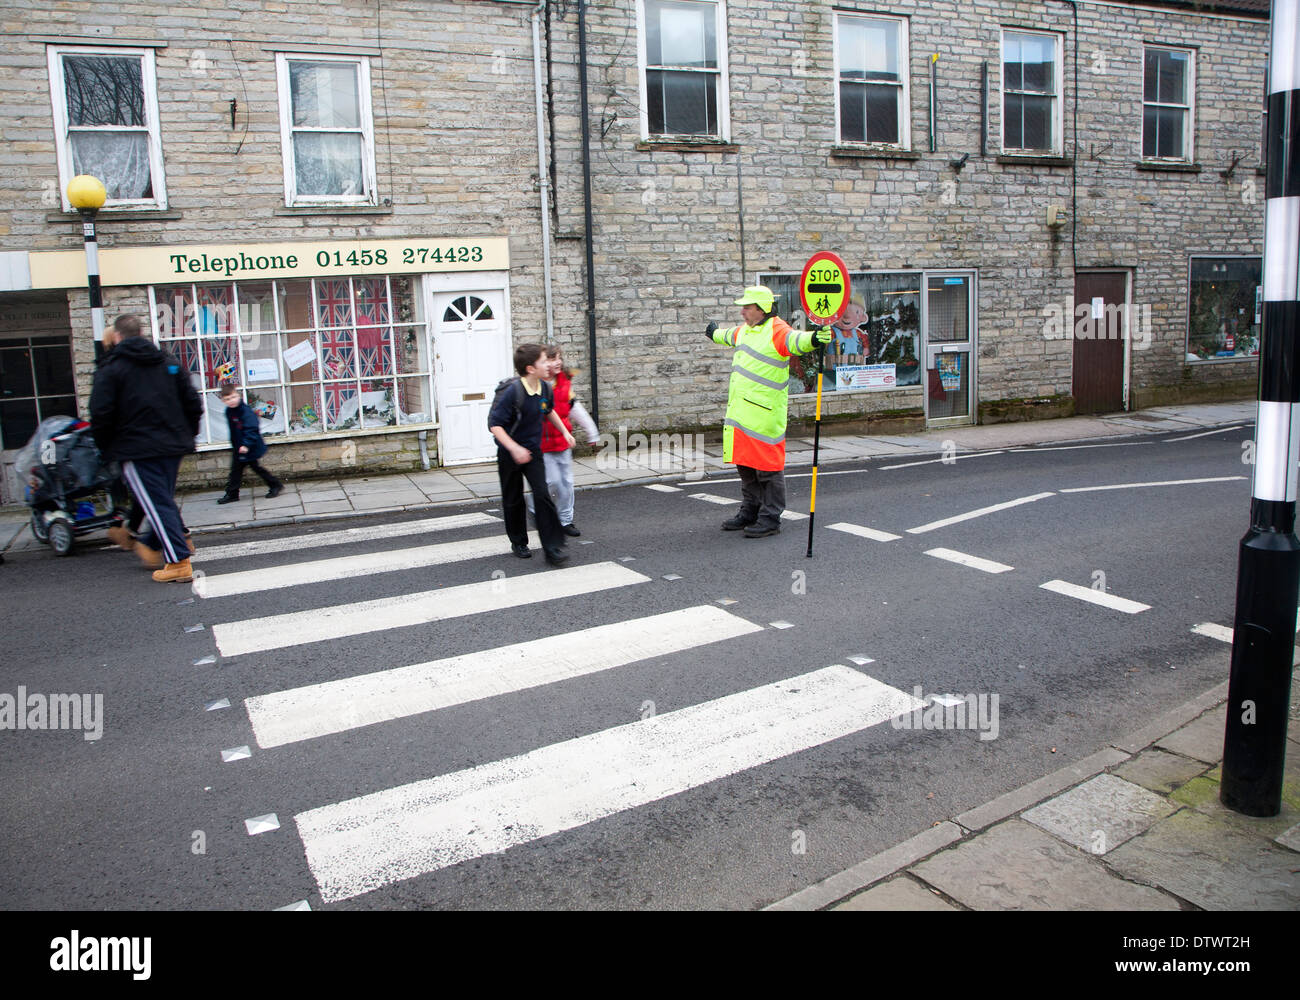 Lollipop Man Stopping Traffic To Allow People To Cross The